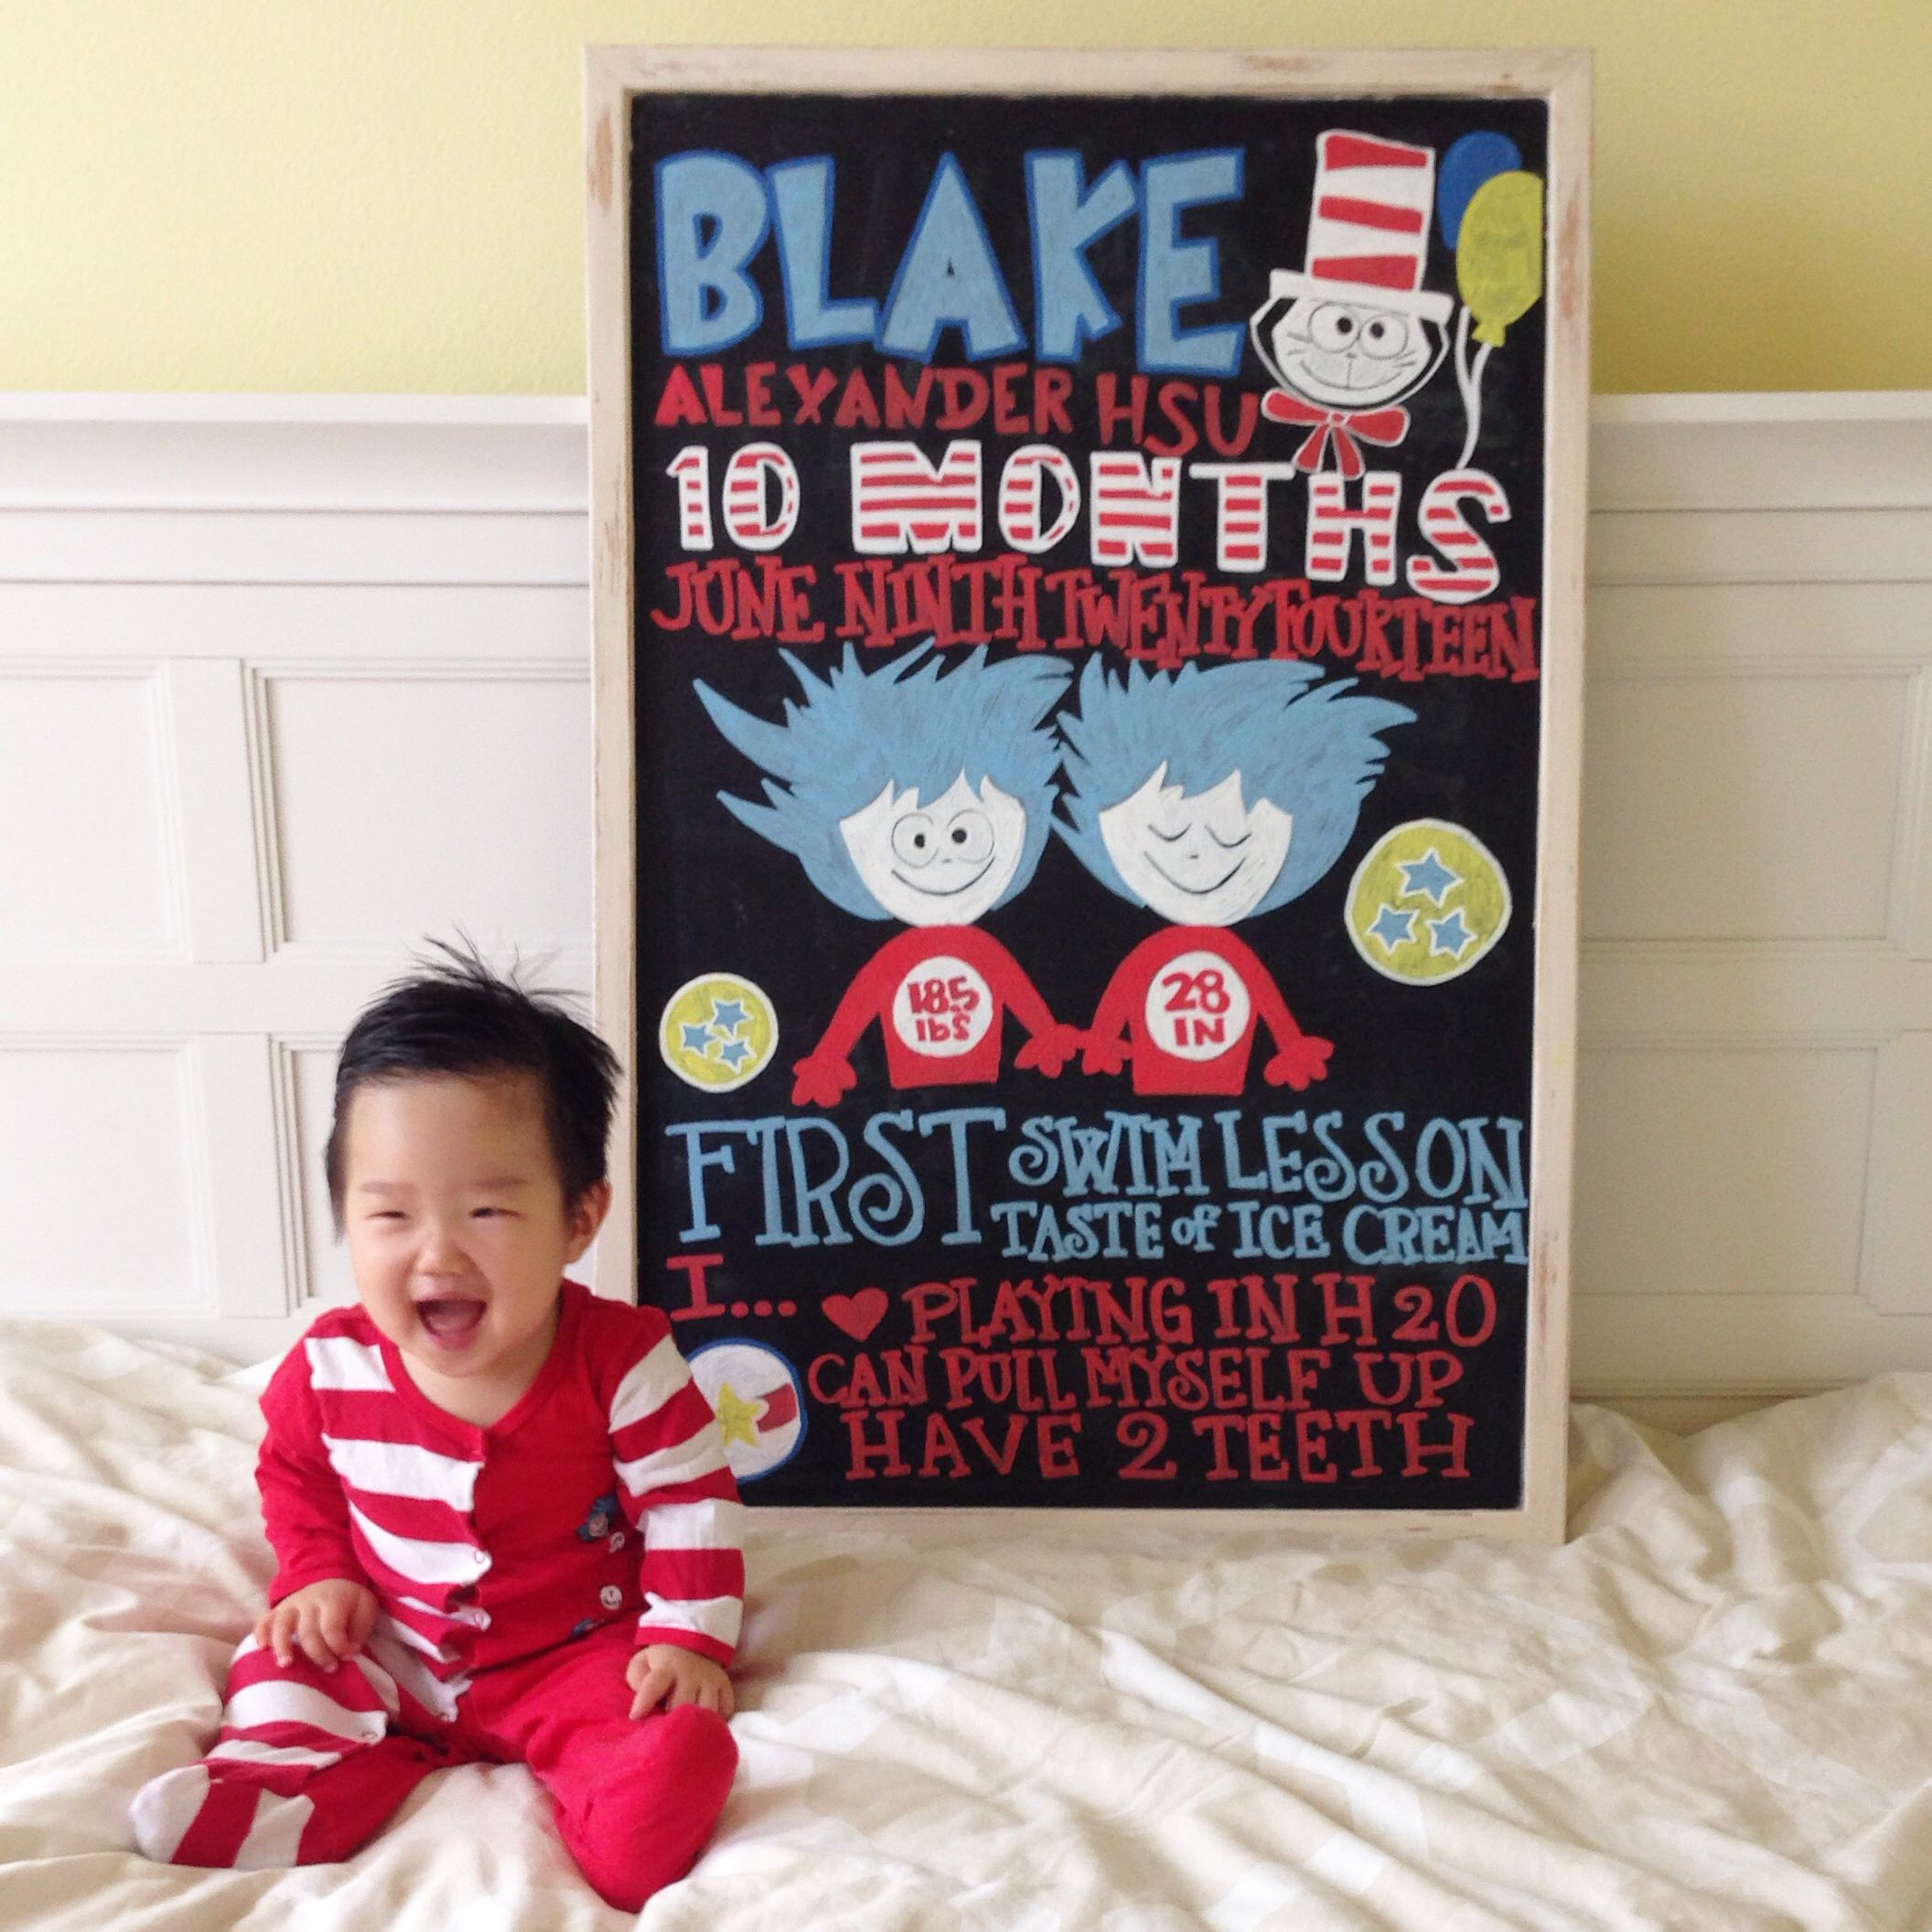 10 Month Old Baby Milestone Photo Dr Seuss Inspired Subway Art Chalkboard Adventuresofblakealexand Baby Milestone Photos Monthly Baby Photos Baby Milestones